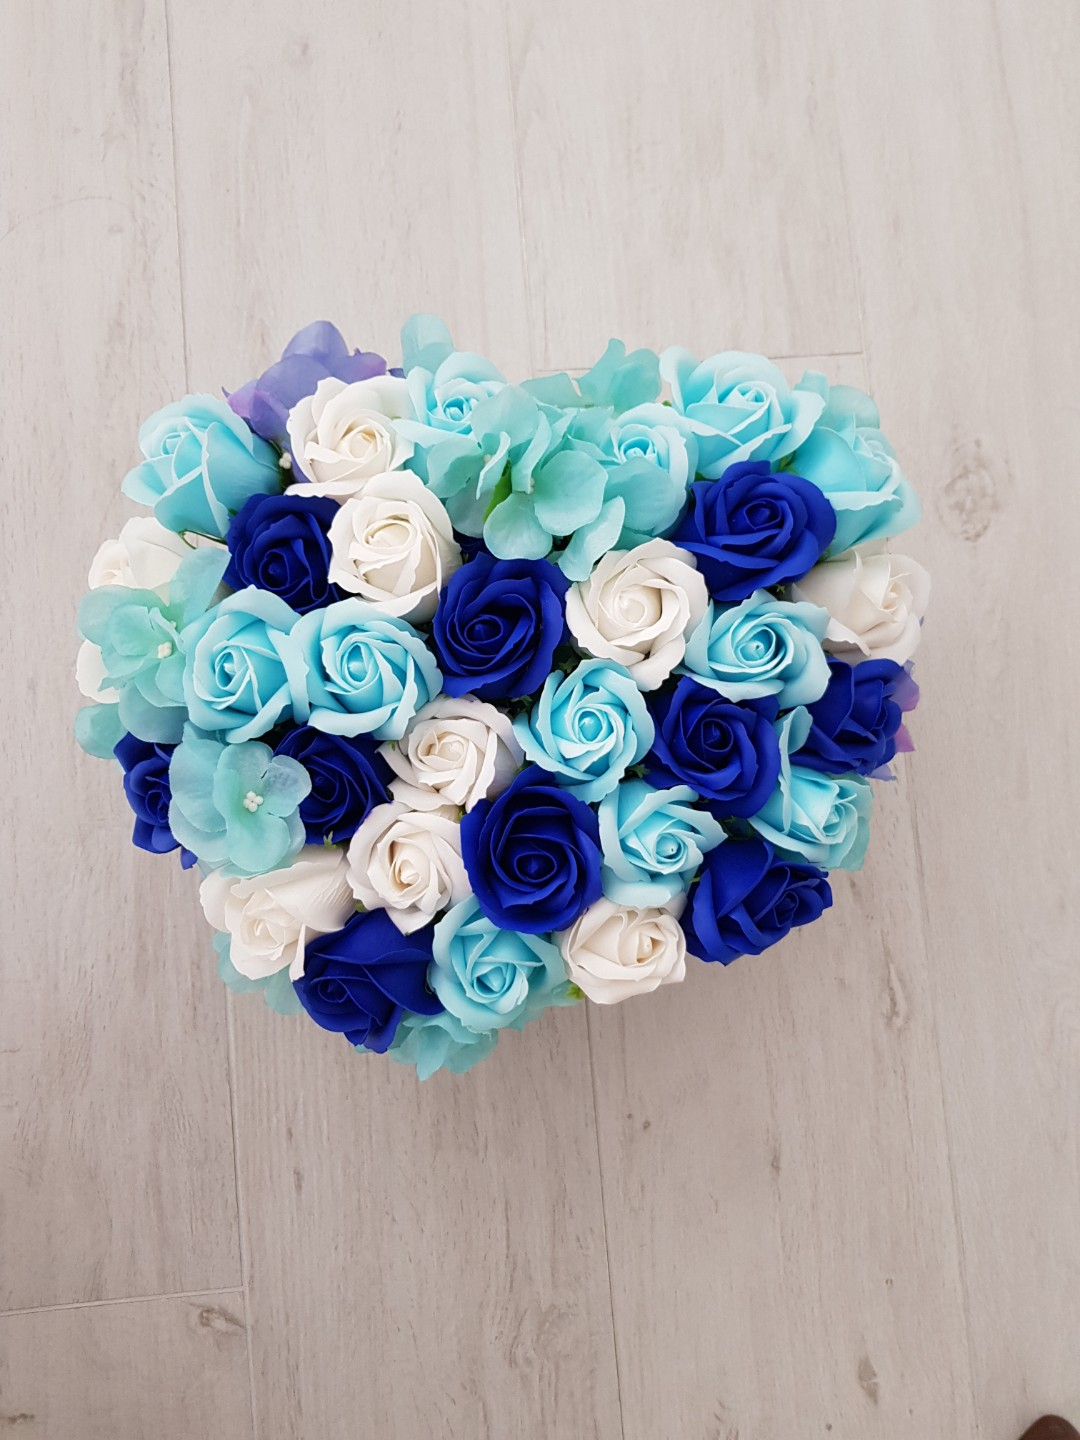 Blue Roses Fake Flower Bed Design Craft Handmade Craft On Carousell